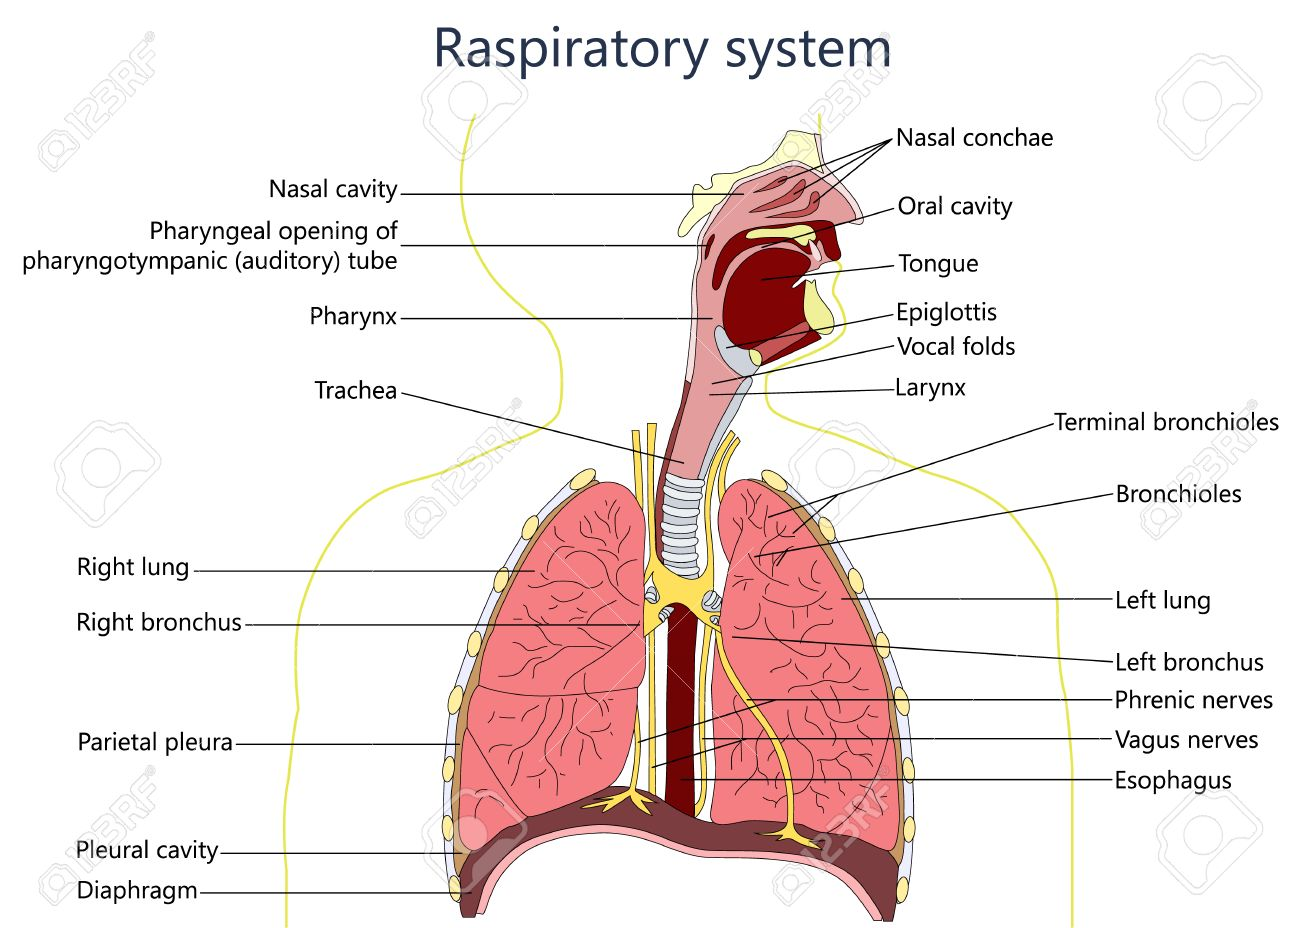 Respiratory system stock photos pictures royalty free respiratory system diagram ccuart Choice Image